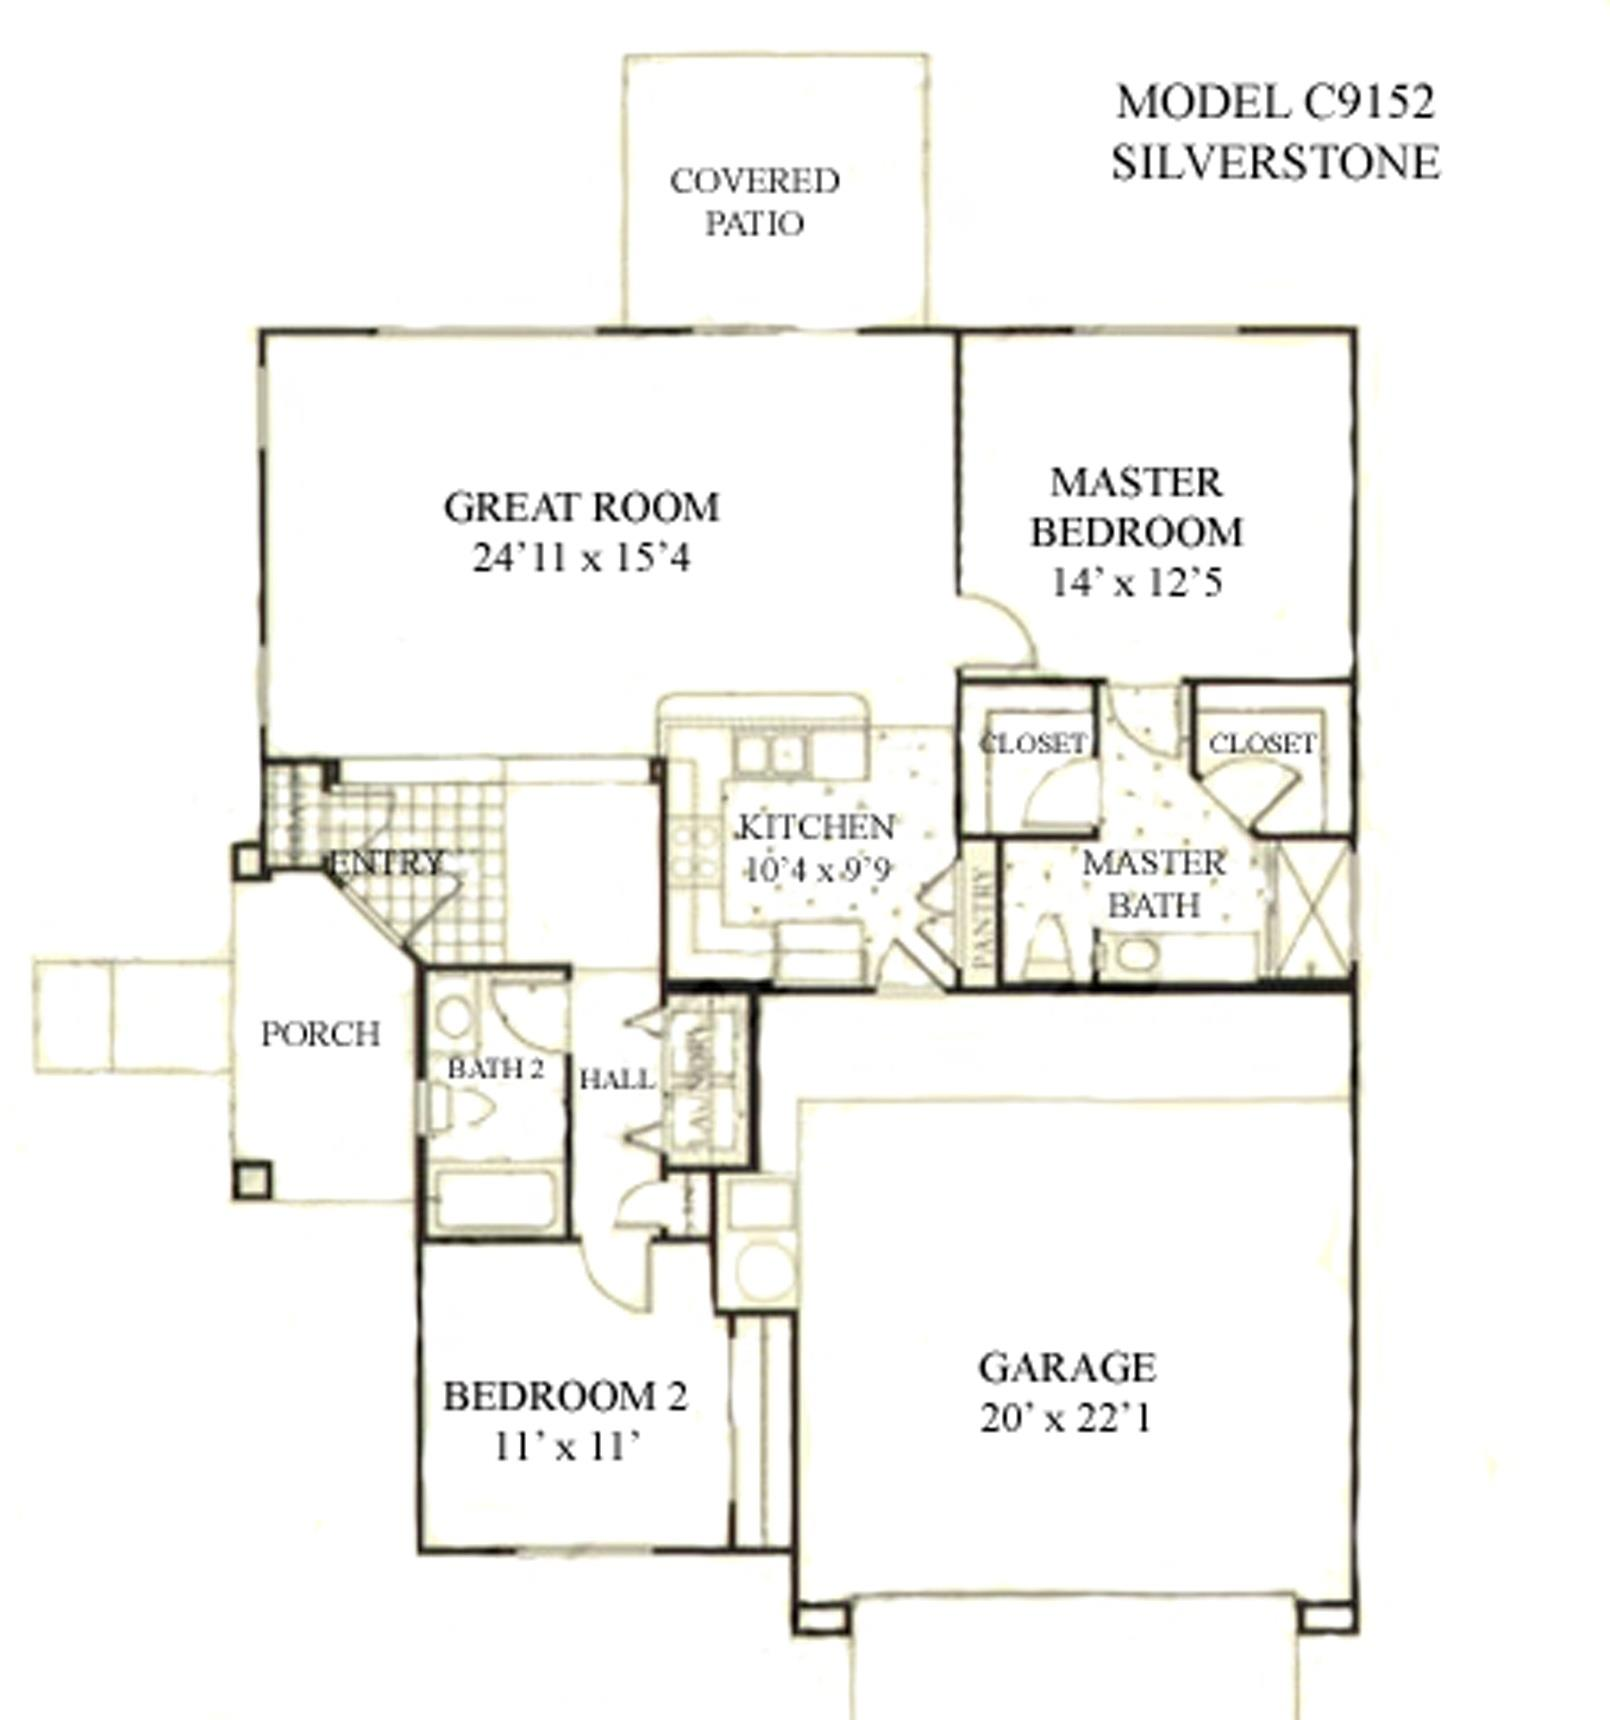 Sun City Grand Silverstone floor plan, Del Webb Sun City Grand Floor Plan Model Home House Plans Floorplans Models in Surprise Phoenix Arizona AZ Ken Meade Realty Kathy Anderson